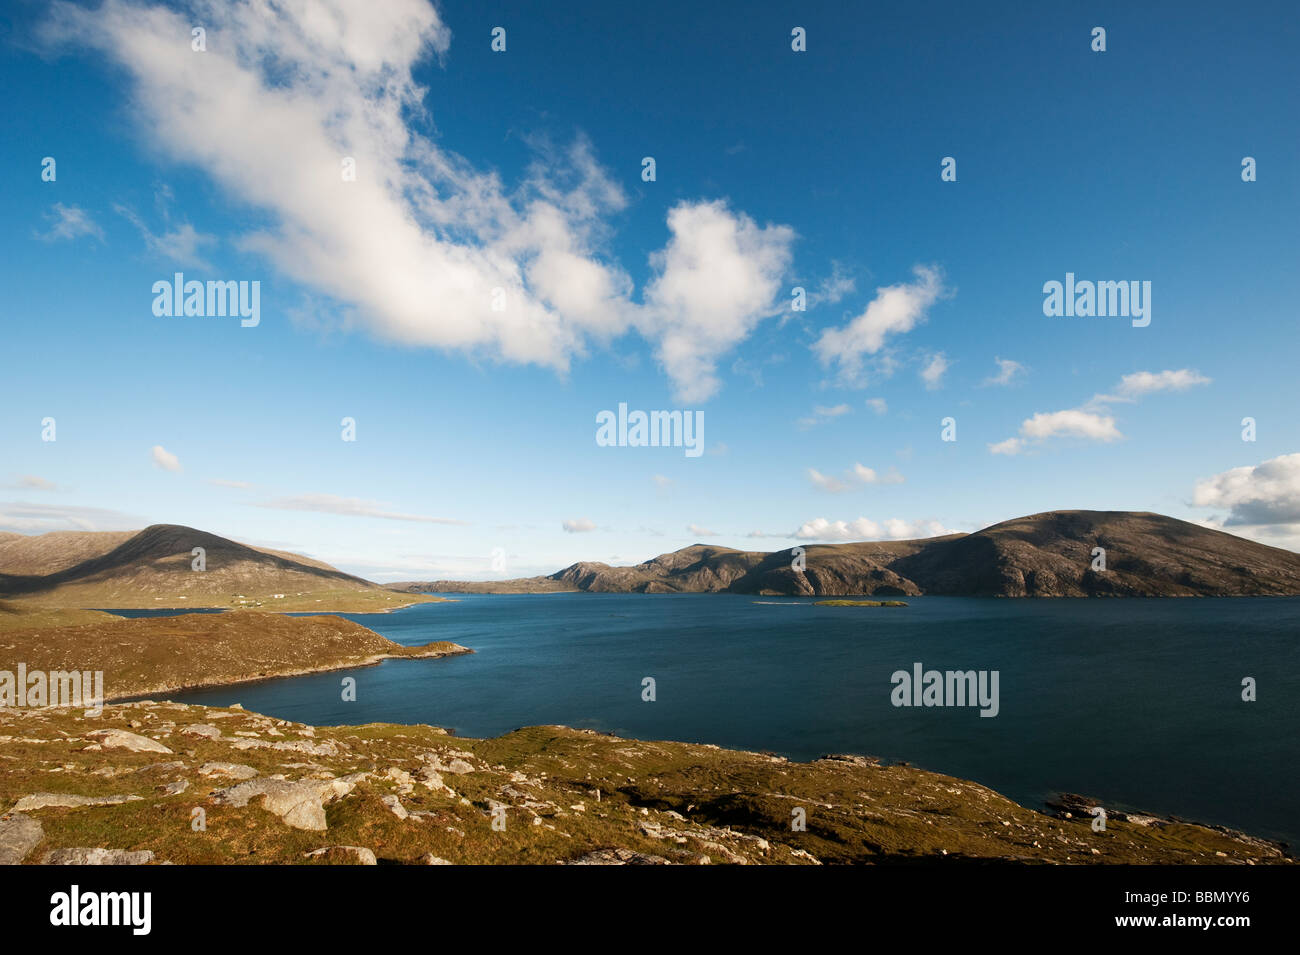 Loch a Siar, and South Harris mountain vista, Isle of Harris, Outer Hebrides, Scotland - Stock Image